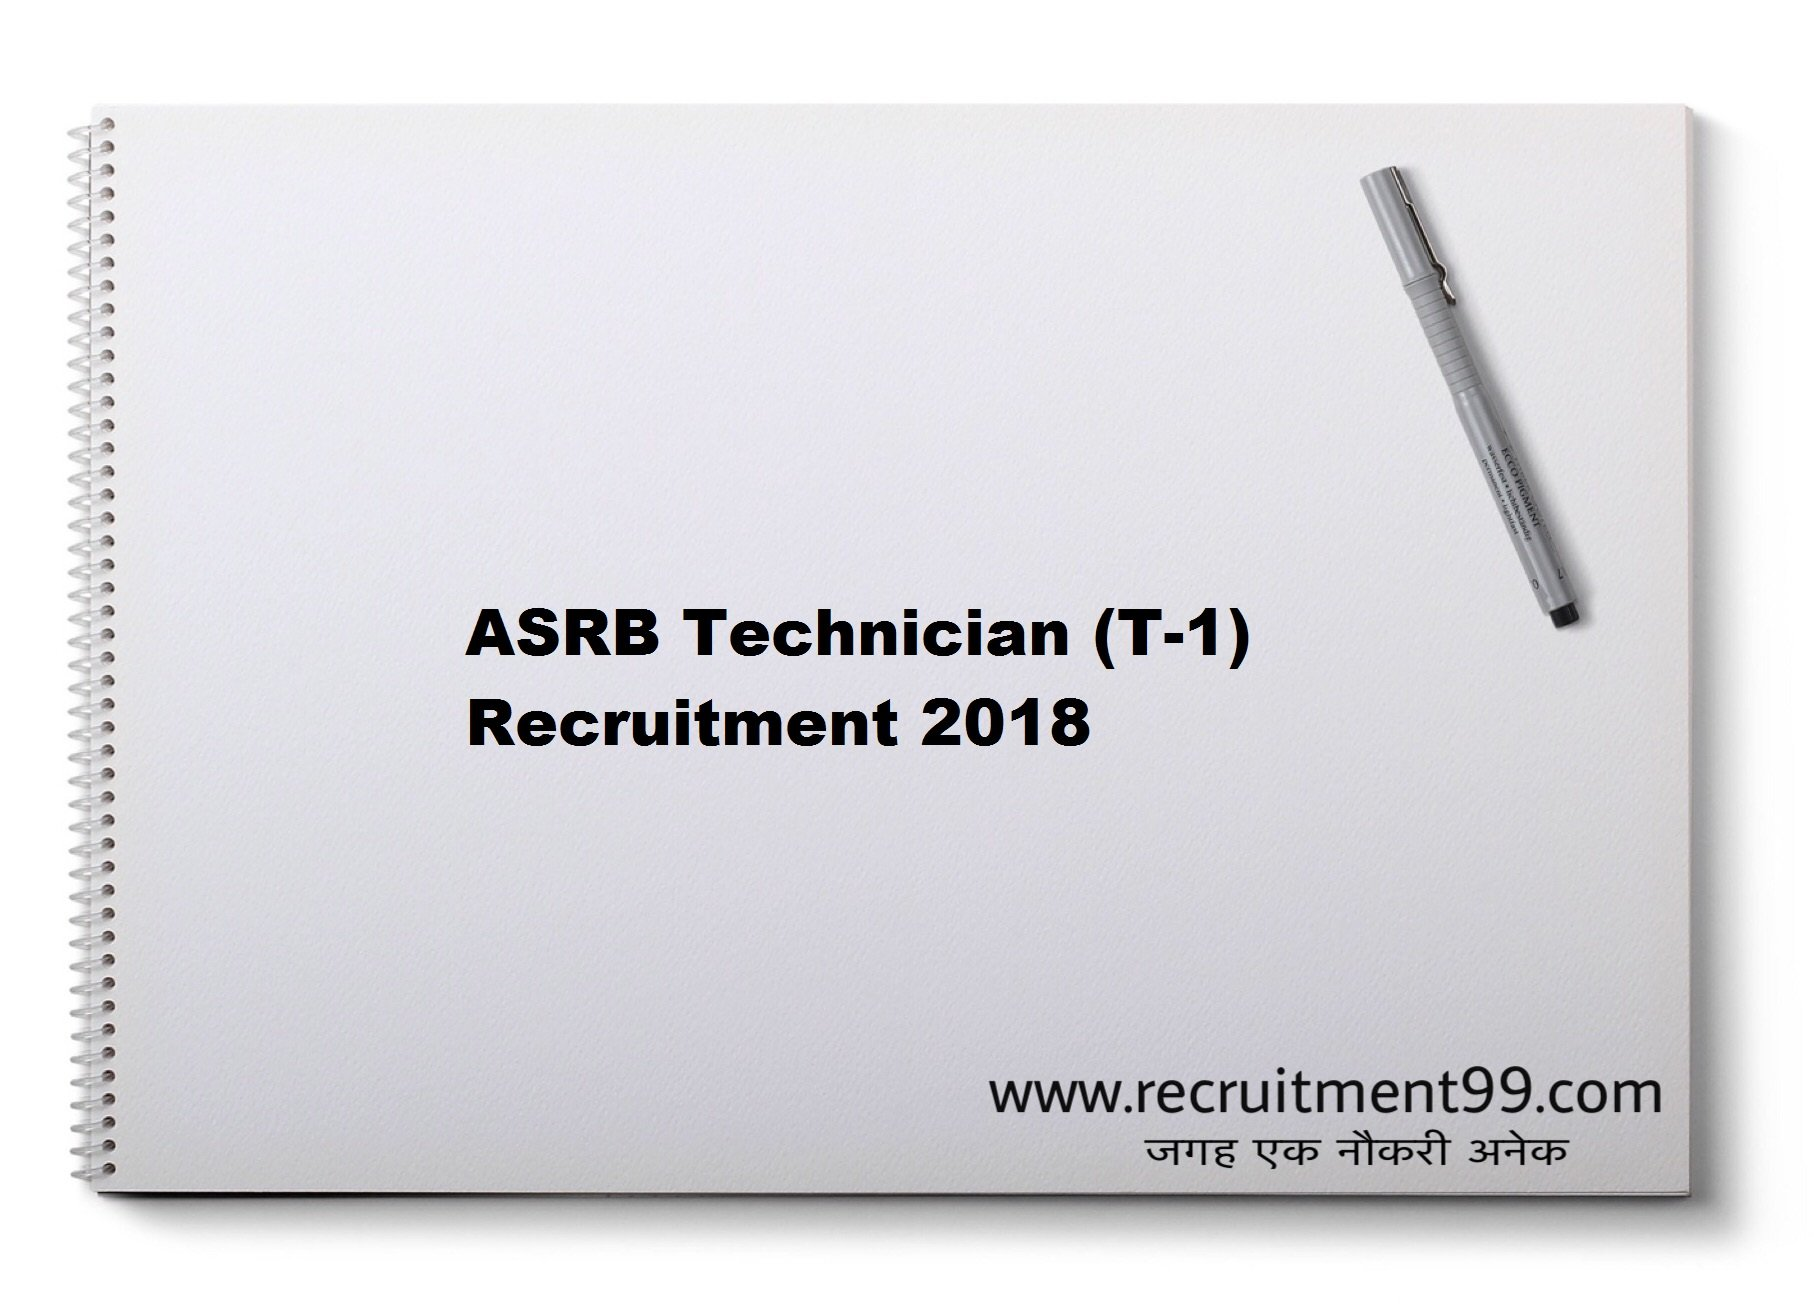 ASRB Technician (T-1) Recruitment Admit Card Result 2018